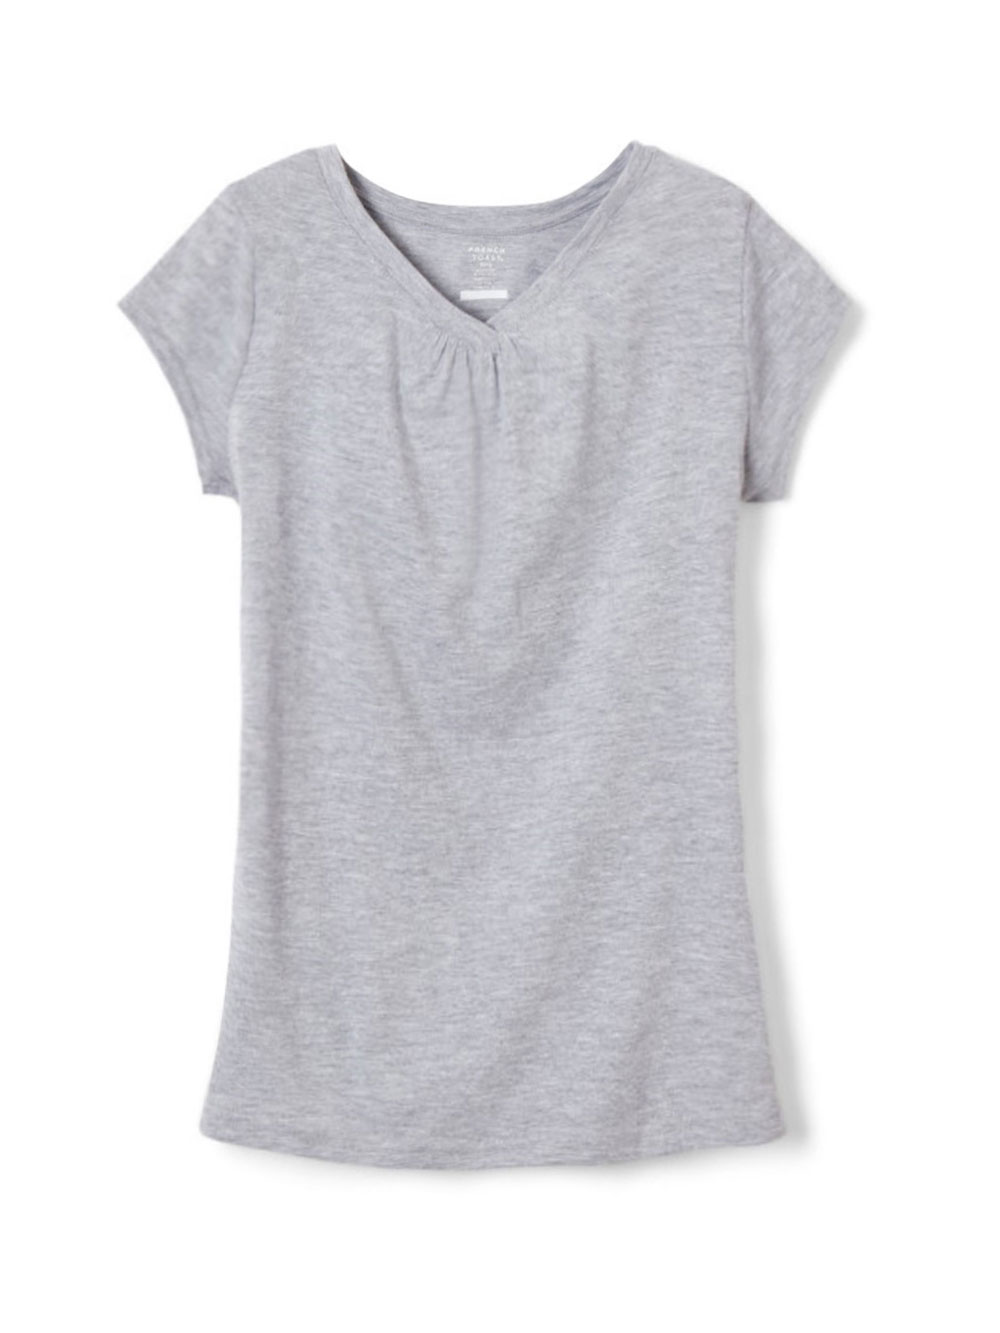 Image of French Toast Big Girls Ruched VNeck TShirt Sizes 7  16  heather gray 10  12